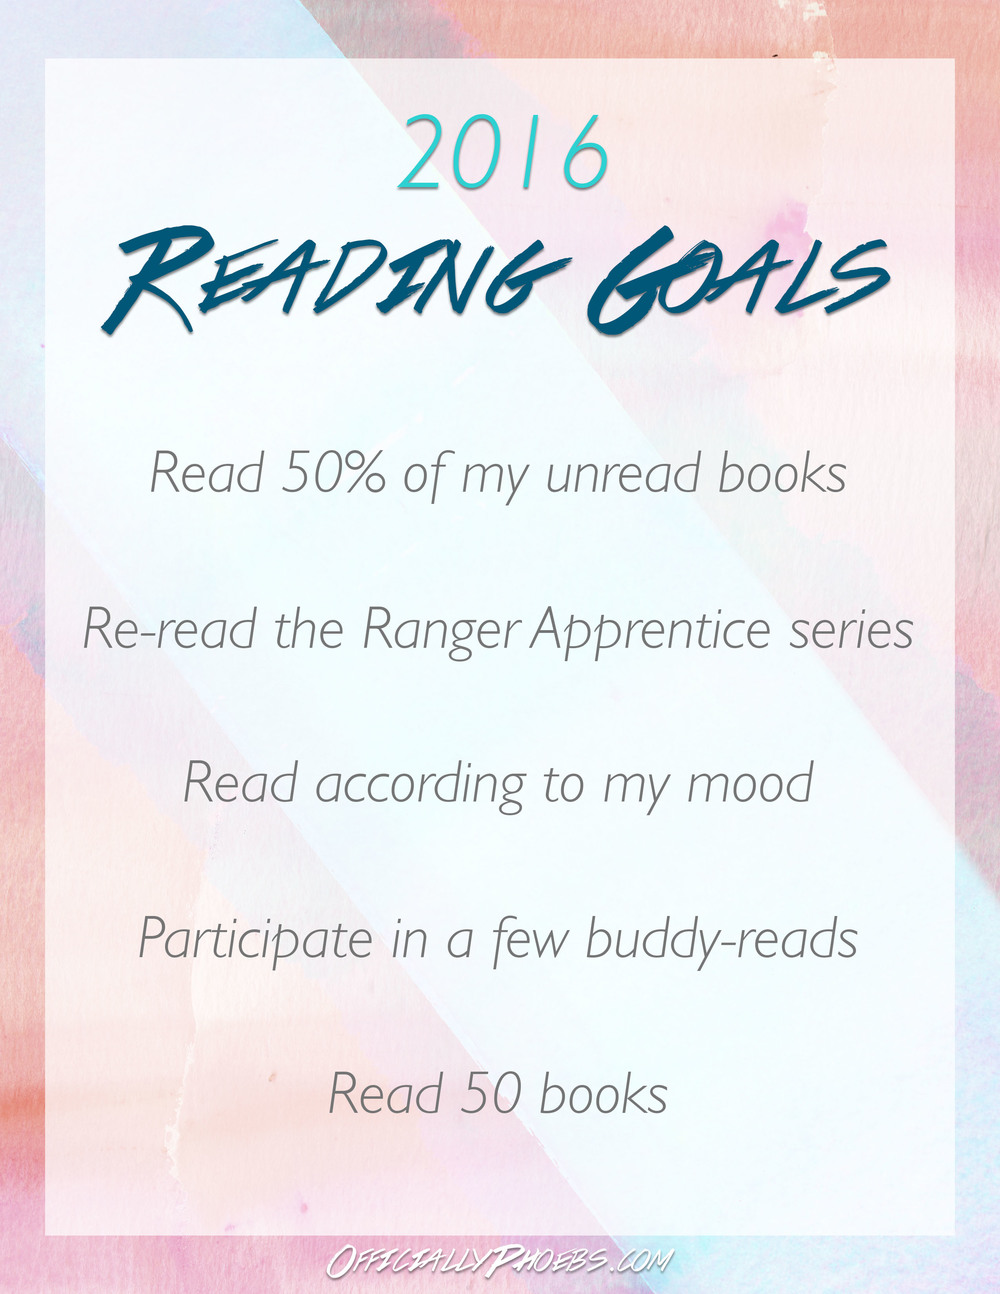 2016ReadingGoals_OfficiallyPhoebs.jpg